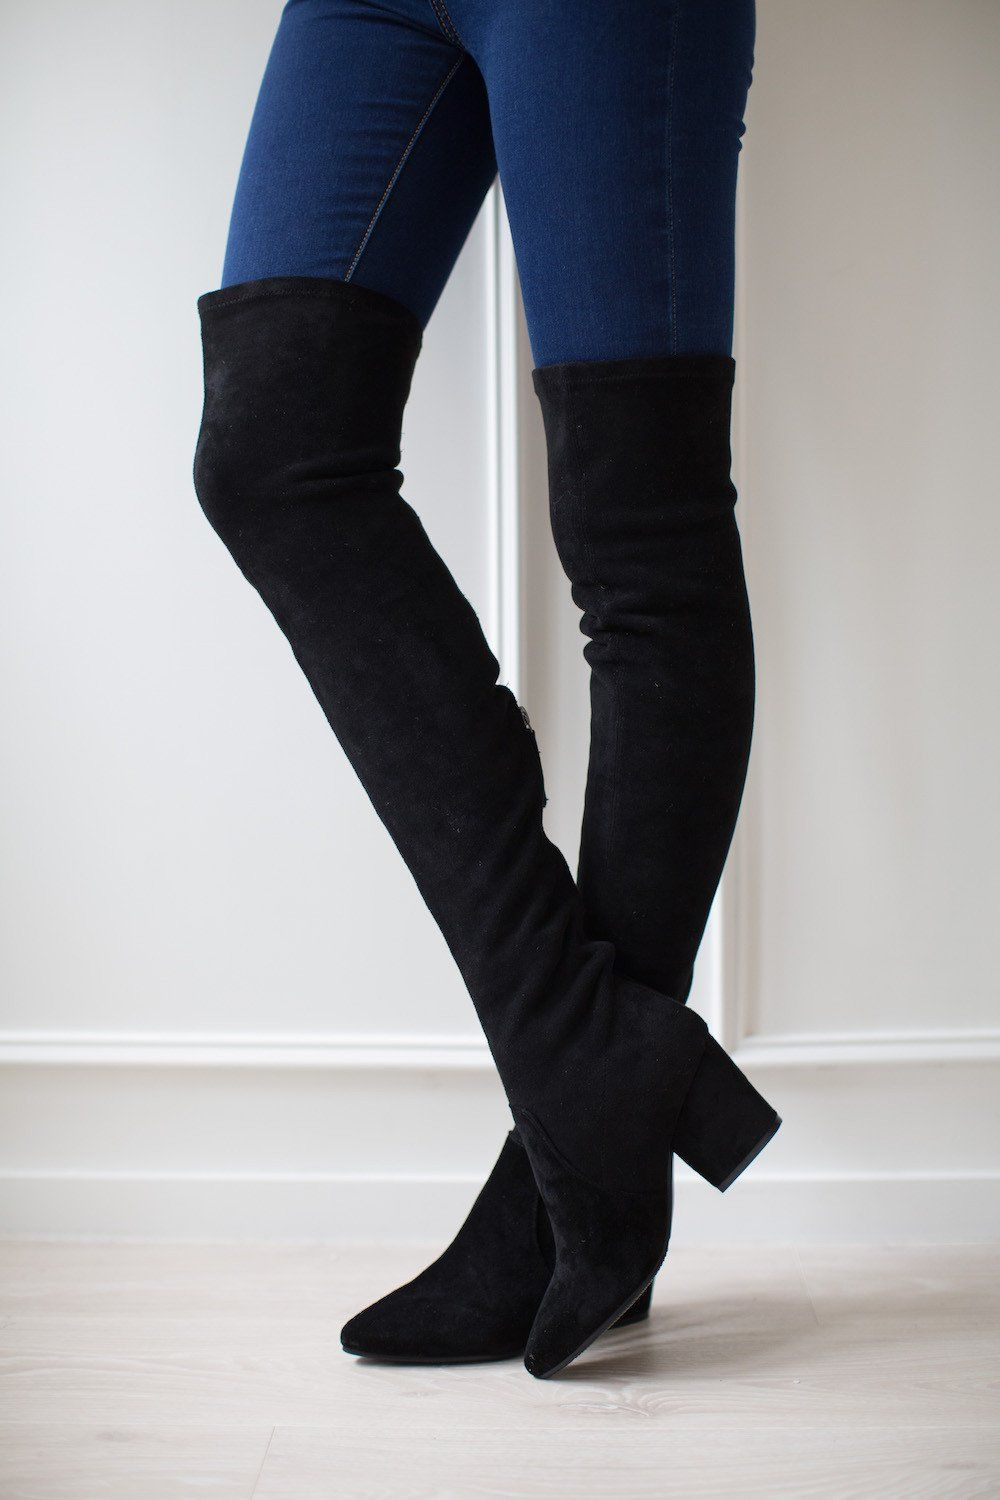 7e4a3c72e Goodnight Macaroon presents the  Ellis  Black Classic Over The Knee Suede  Leather Boots. Also available in taupe and tan. Made to order  5-10 working  days ...